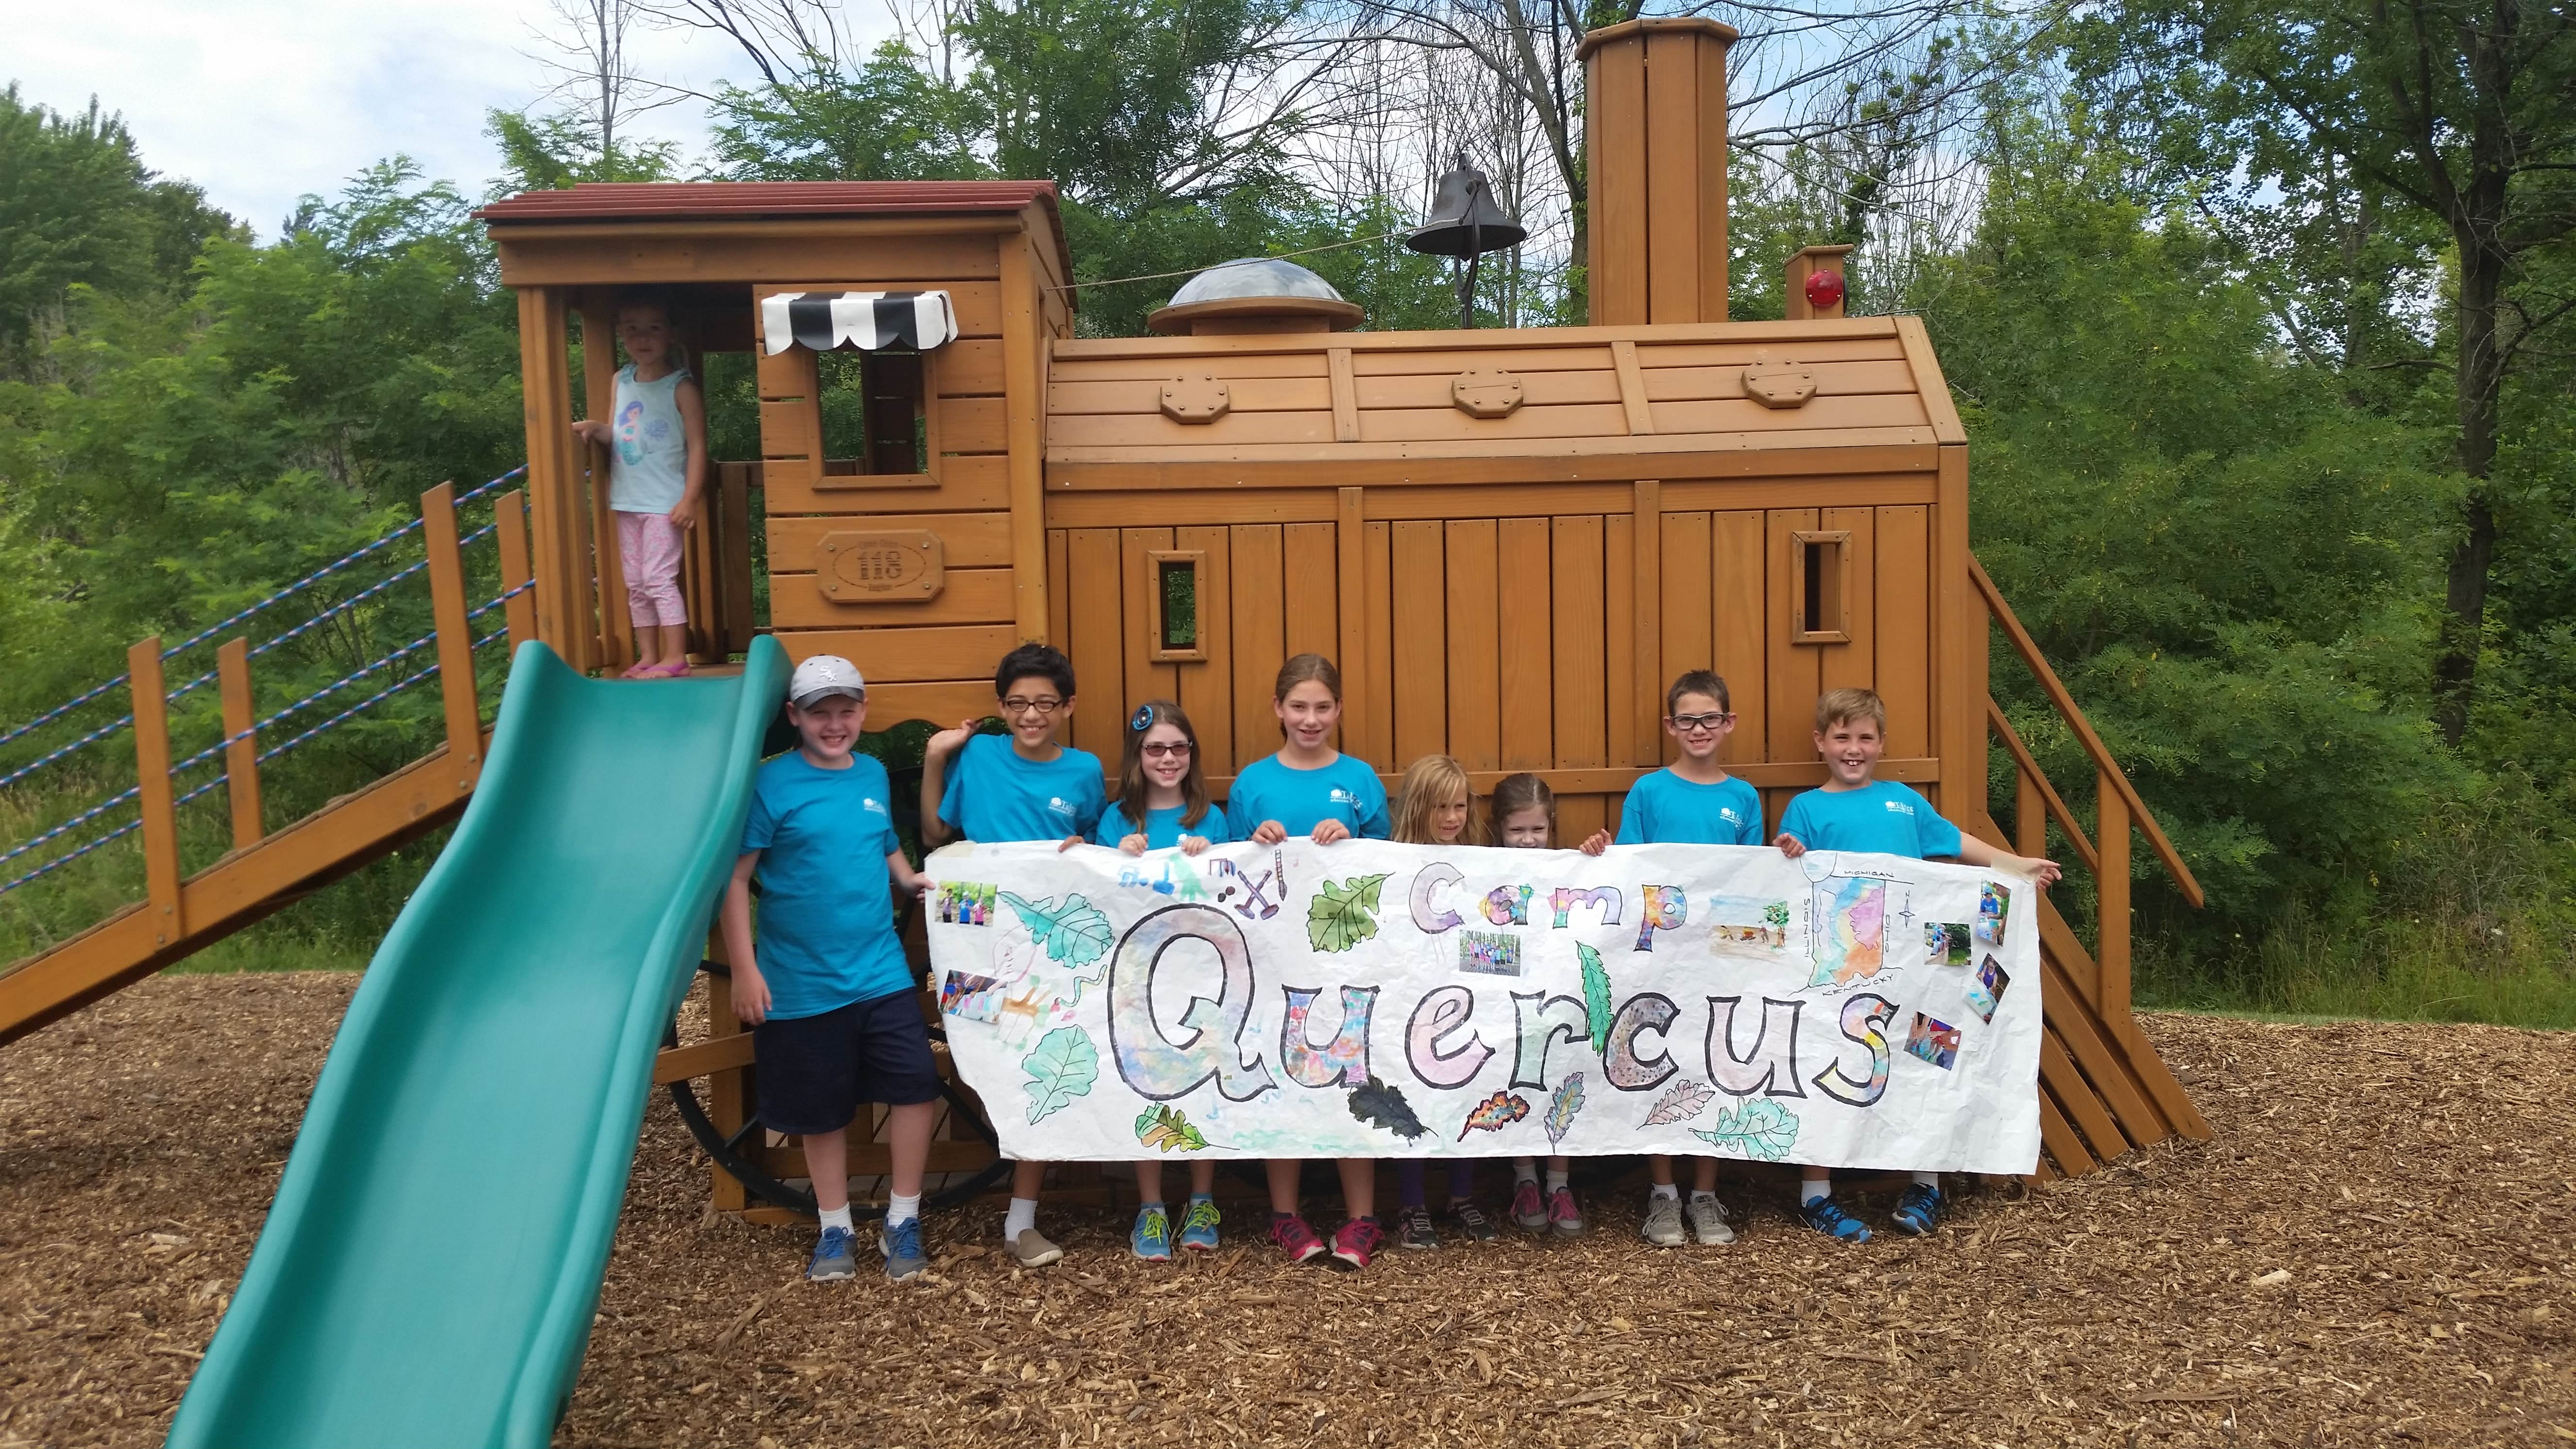 Taltree opens new playground Equipment made possible by donation ...